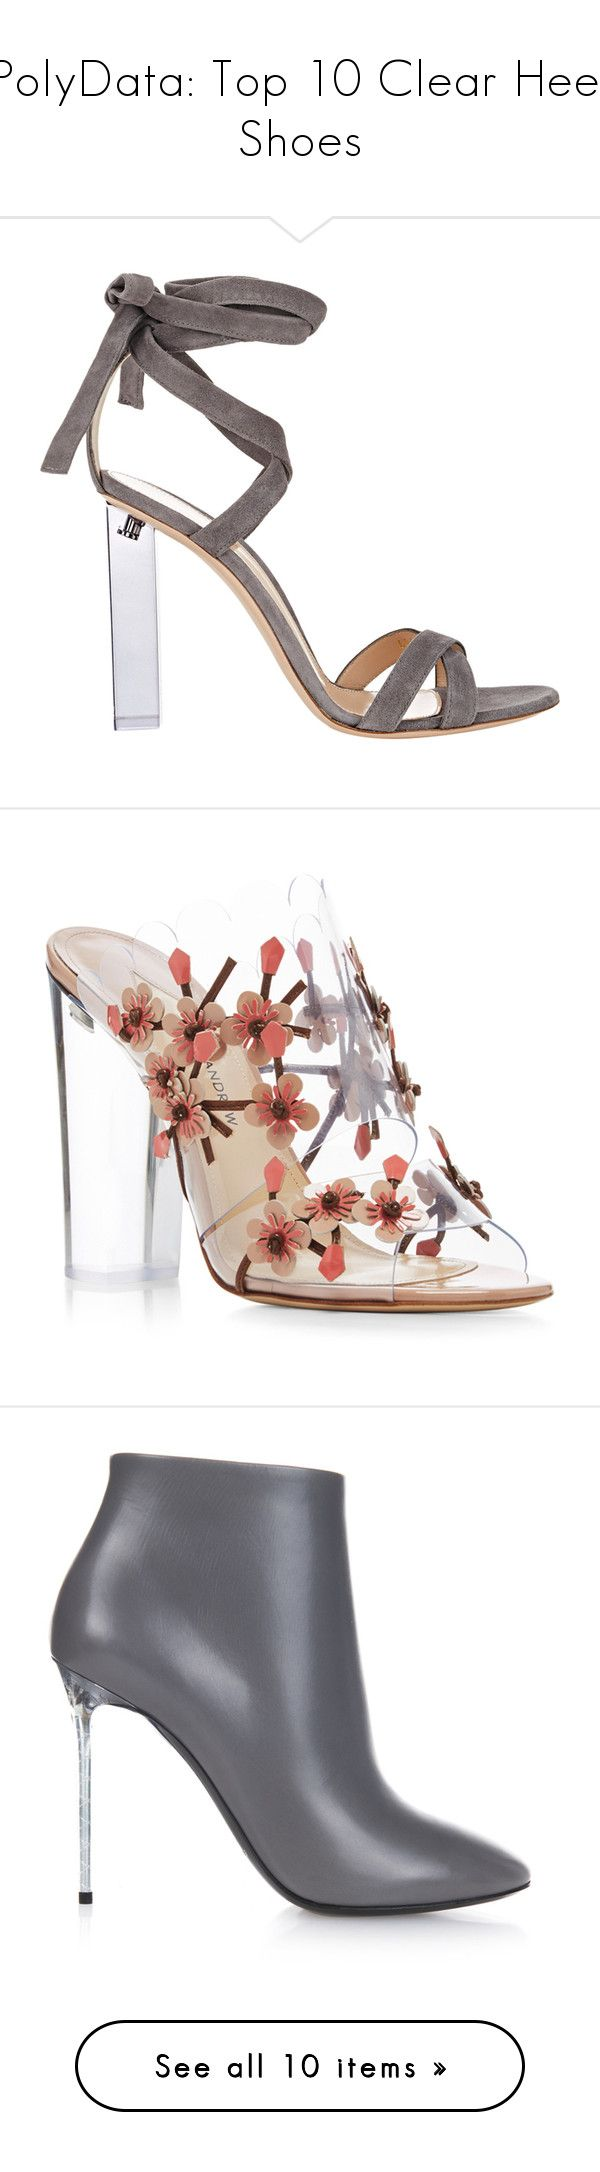 """PolyData: Top 10 Clear Heel Shoes"" by polyvore ❤ liked on Polyvore featuring clearheels, polydata, shoes, sandals, heels, chaussures, high heels, colorless, ankle tie sandals and grey shoes"